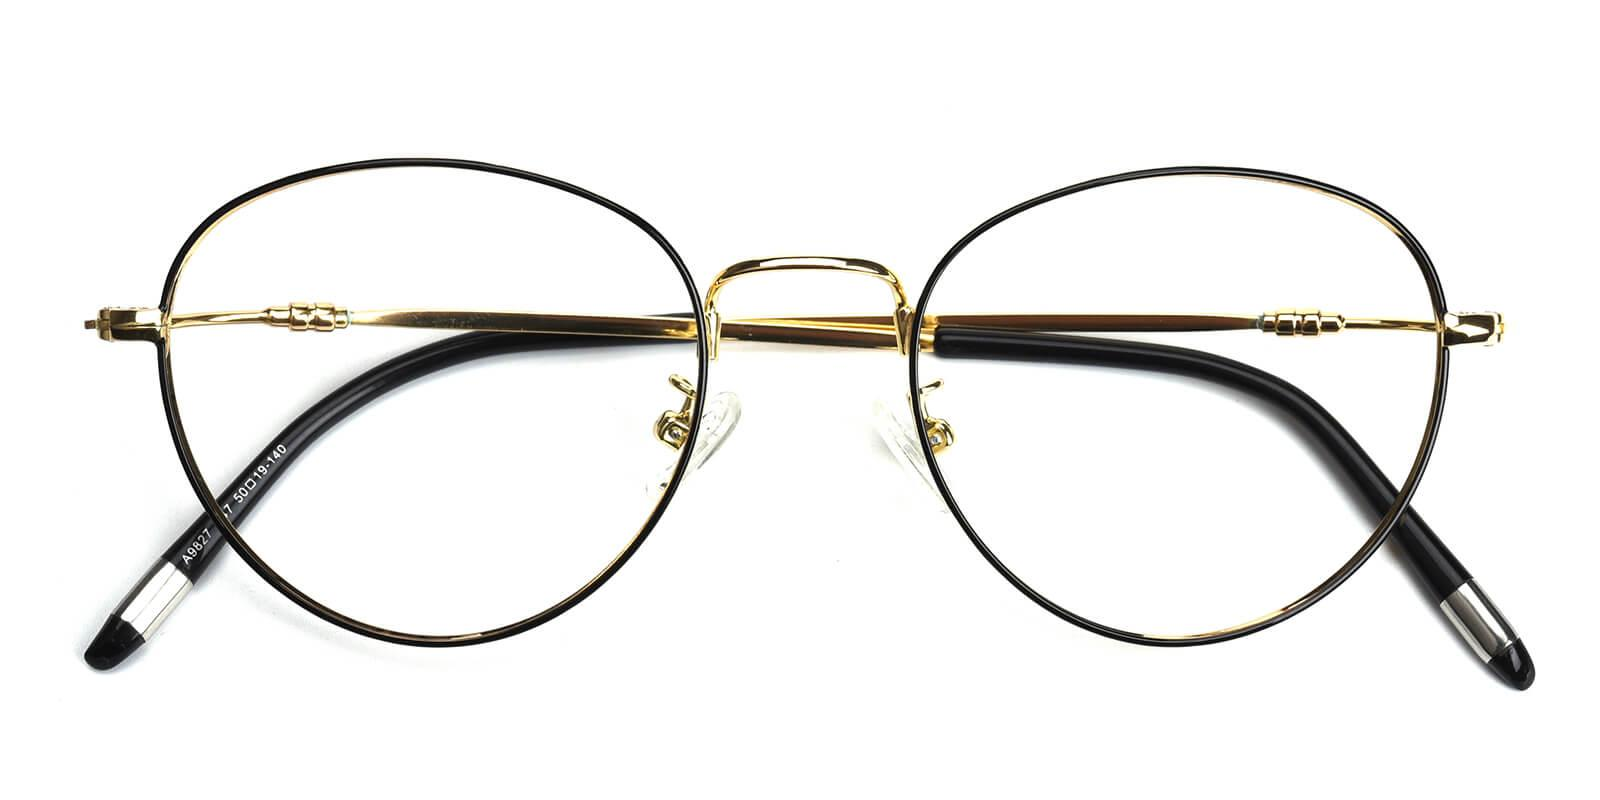 Sadie-Multicolor-Round-Metal-Eyeglasses-detail